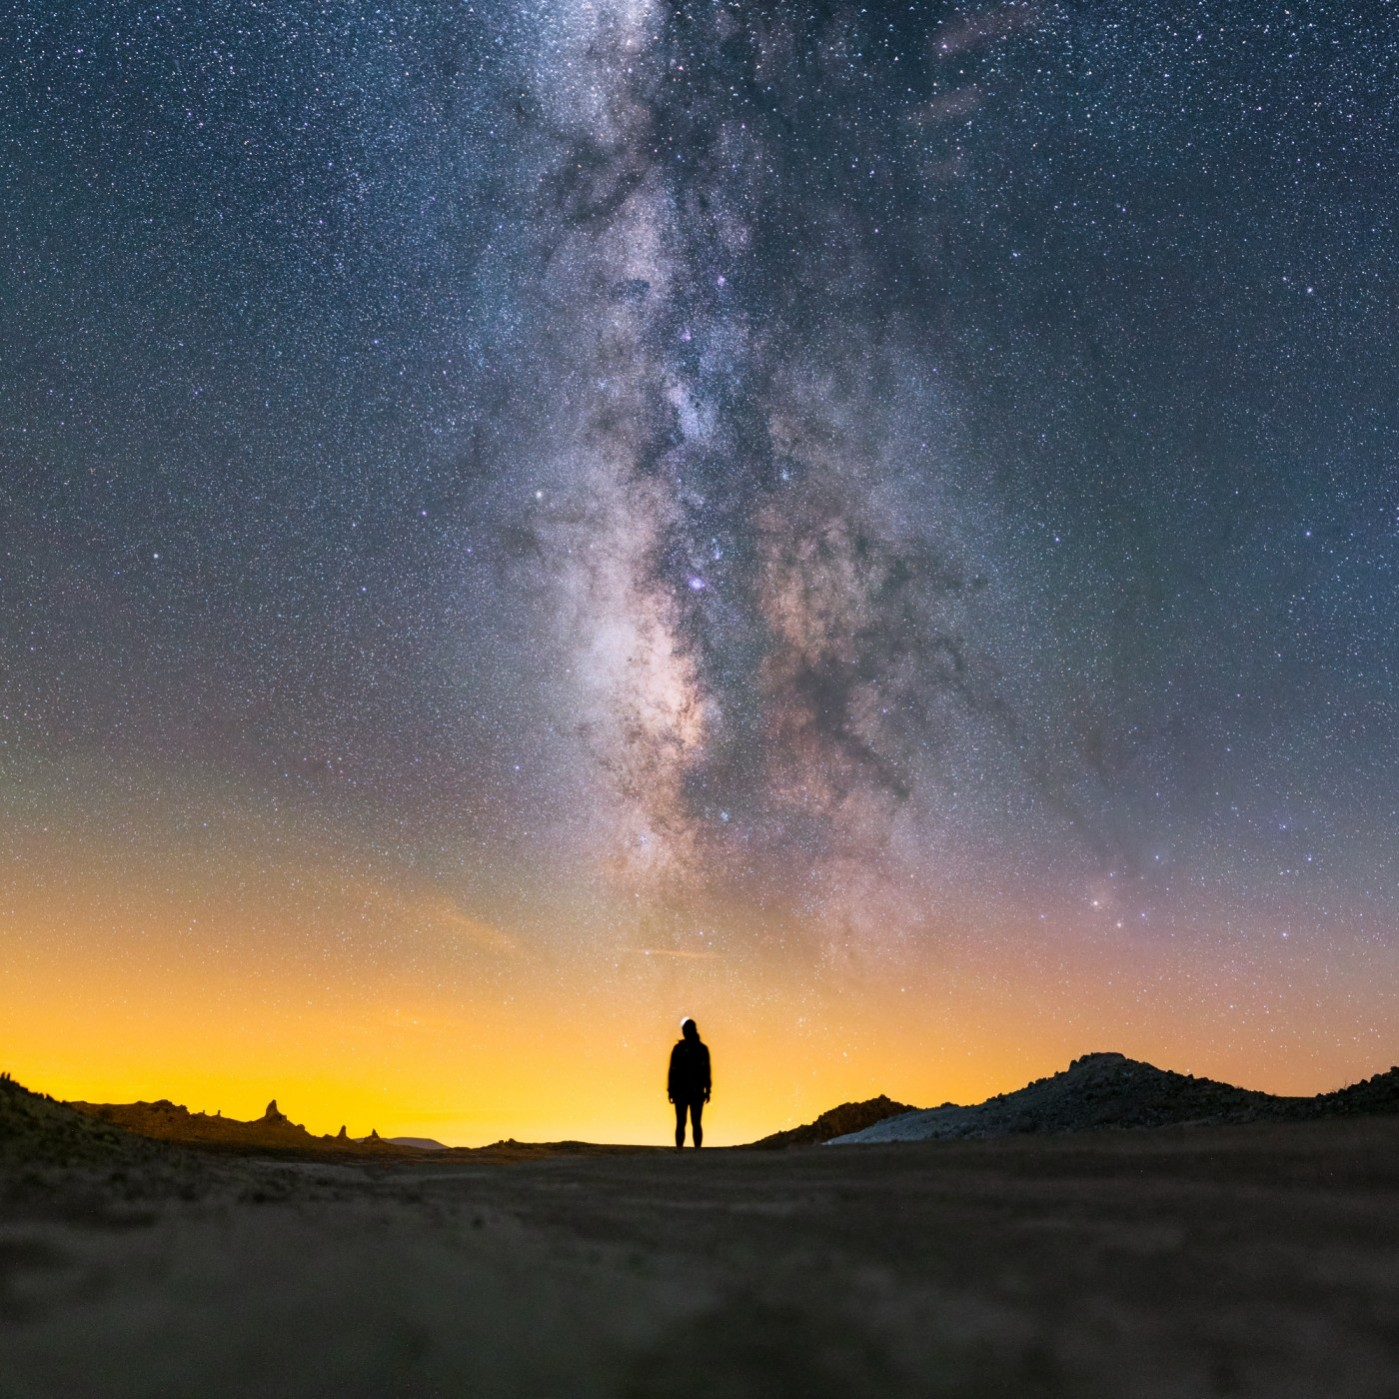 sony-a7S-review-astrophotography-1